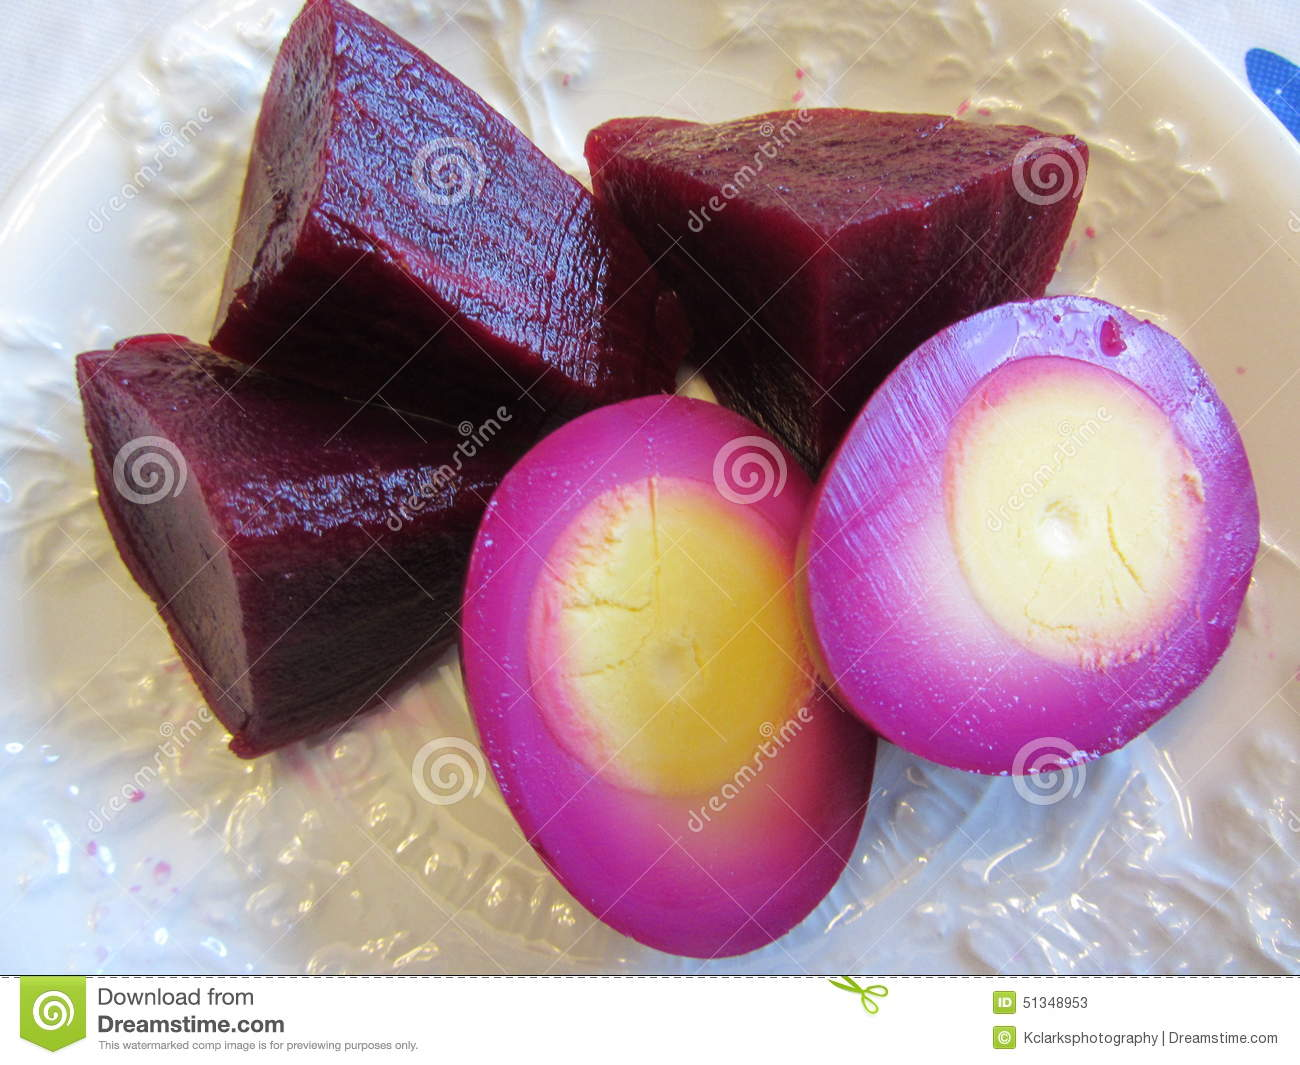 Beet Pickled Hard Boiled Eggs Stock Photo - Image: 51348947